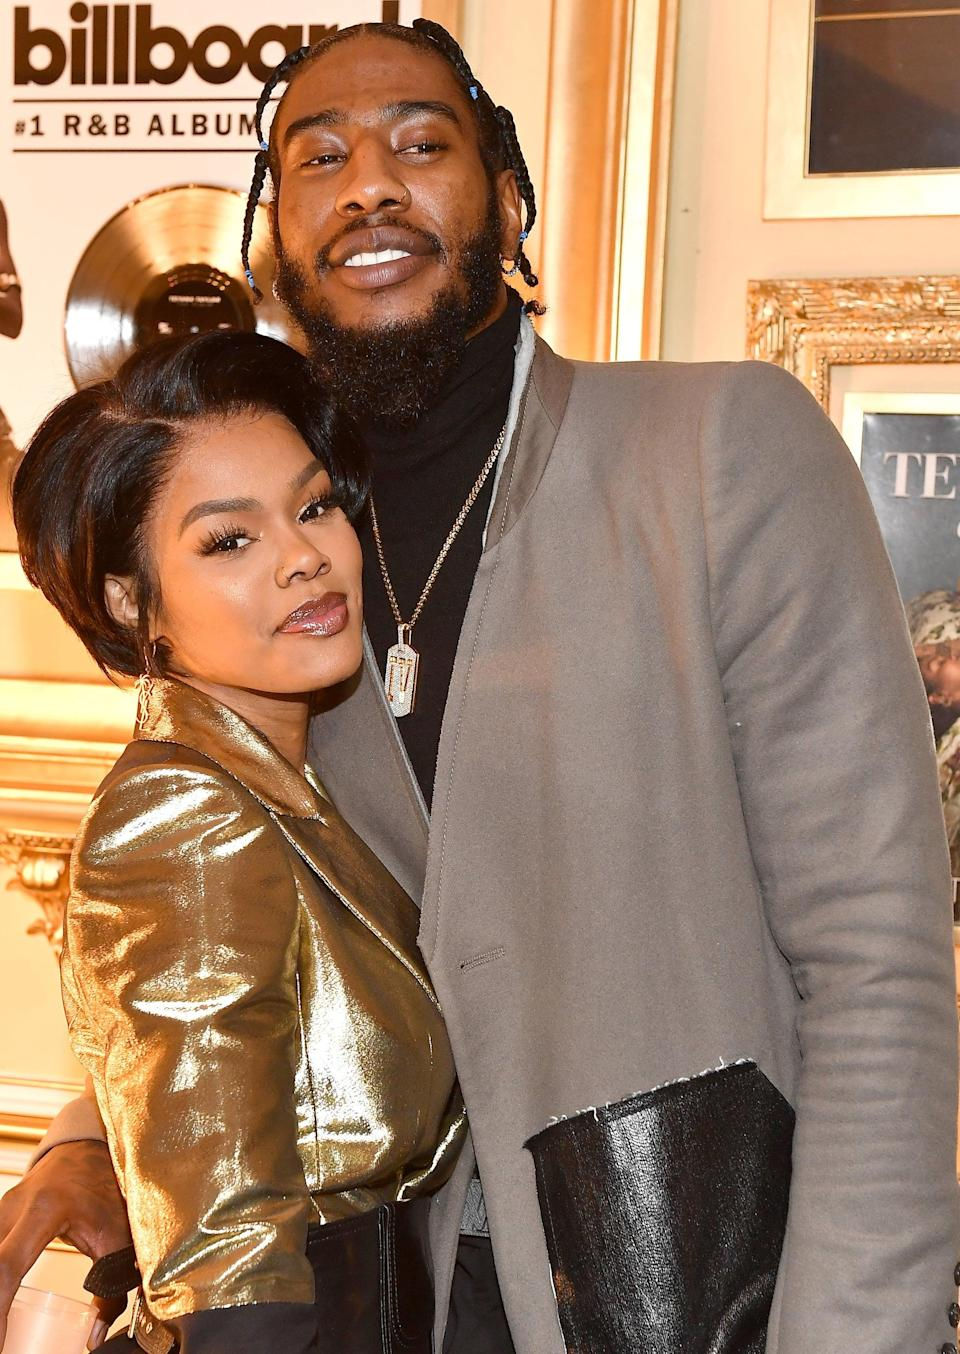 """<ol> <li><strong><a href=""""https://www.youtube.com/watch?v=1sTufvxotHg"""" class=""""link rapid-noclick-resp"""" rel=""""nofollow noopener"""" target=""""_blank"""" data-ylk=""""slk:Teyana played hard to get"""">Teyana played hard to get</a> when she first met Iman</strong>. """"I did not like him at first because when I first met him, he had just got drafted. He was young and doing a lot. I was at a party. He was drunk and had his shirt off. It was just too much going on, baby,"""" Teyana told Wendy Williams in 2018. """"We eventually wound up becoming friends, and I actually shot him for one of my styling companies."""" Teyana and Iman's friendship turned romantic in the end, and they've been going strong ever since. </li> <li><strong>They got married in the bathroom.</strong> After <a href=""""https://people.com/celebrity/iman-shumpert-and-teyana-taylor-are-engaged-see-her-stunning-ring/"""" class=""""link rapid-noclick-resp"""" rel=""""nofollow noopener"""" target=""""_blank"""" data-ylk=""""slk:getting engaged"""">getting engaged</a> in November 2015, the pair secretly tied the knot the following year. """"We got married in the bathroom where our baby was born [Junie], so we just wanted it for good luck before we did the big <a class=""""link rapid-noclick-resp"""" href=""""https://www.popsugar.com/latest/Wedding"""" rel=""""nofollow noopener"""" target=""""_blank"""" data-ylk=""""slk:wedding"""">wedding</a>,"""" Teyana told Wendy. """"It wasn't like inside the bathroom. We had like little cute double doors. It still looked cute.""""</li> </ol>"""